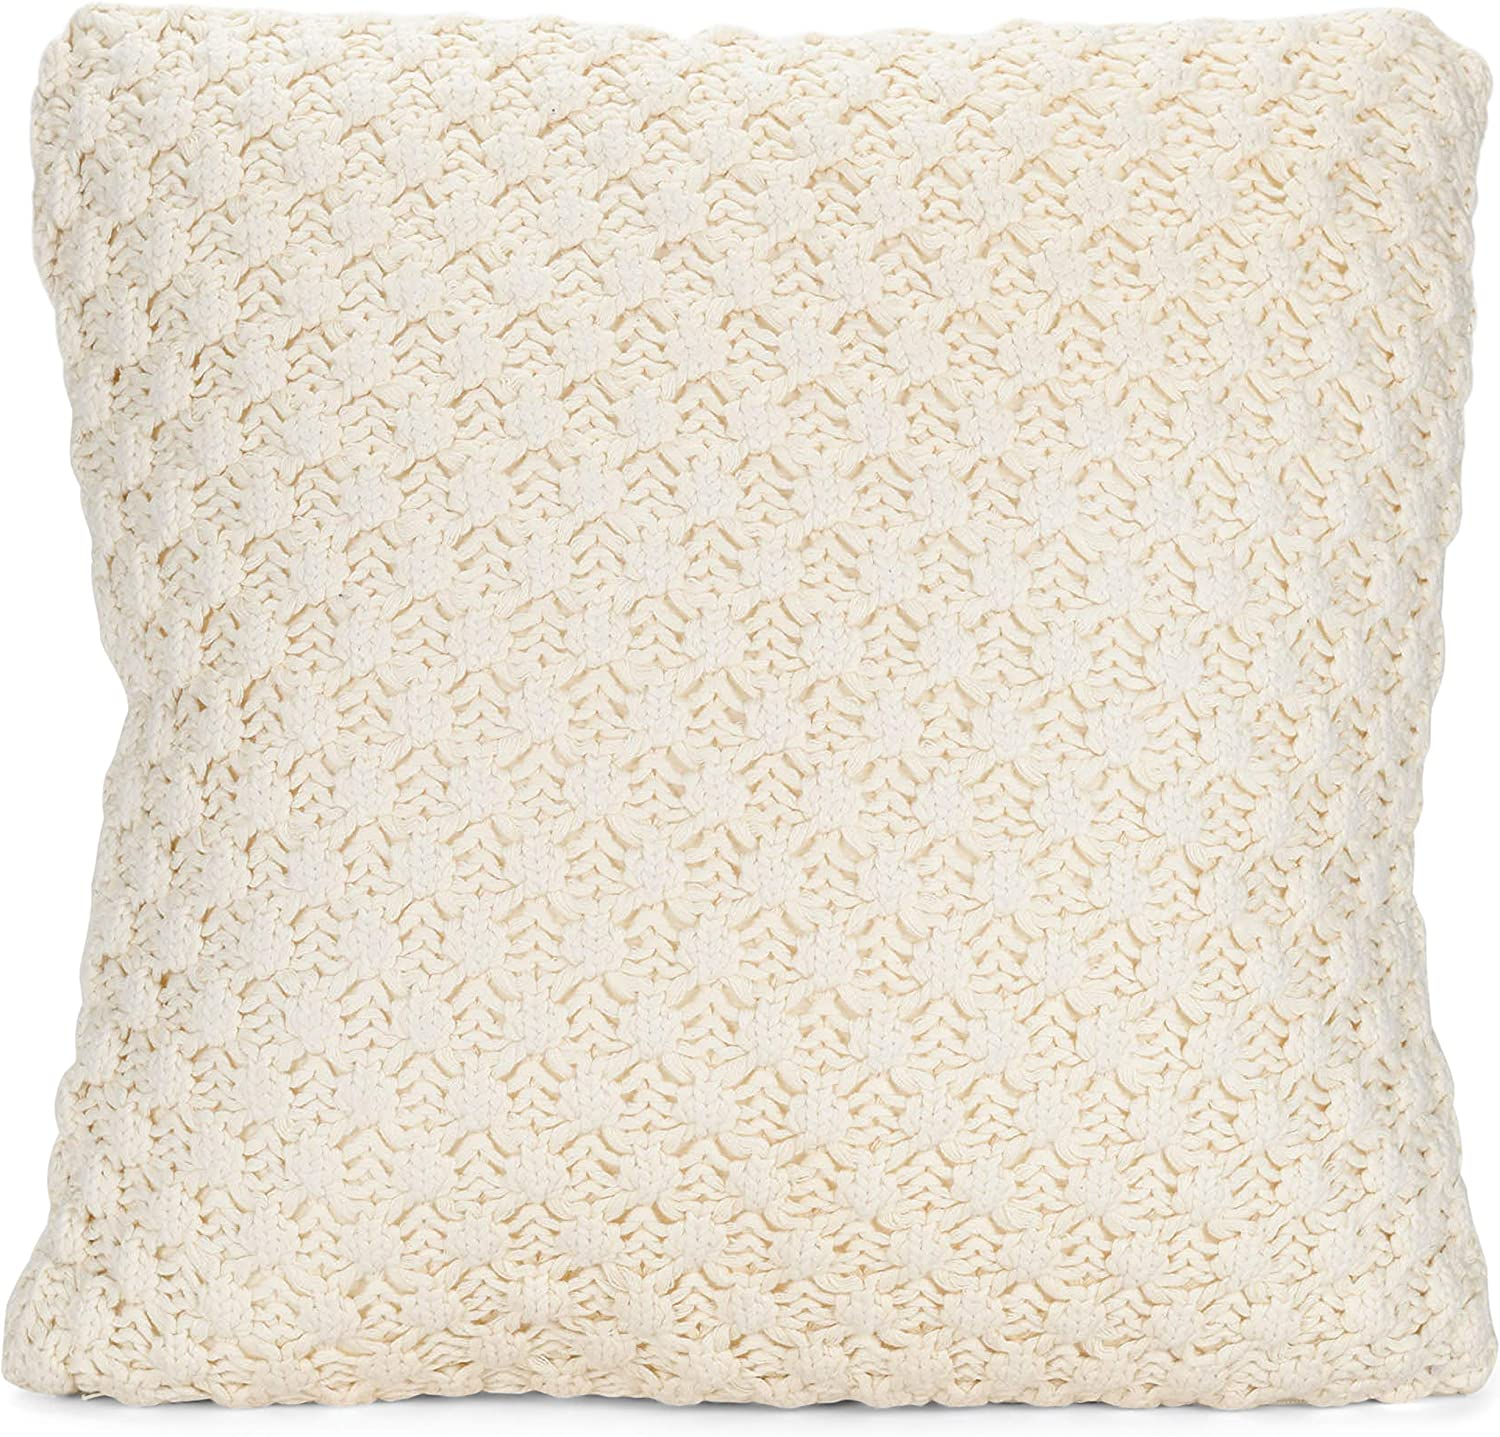 DEMDACO Large Open Weave Soft Cream 16 x 16 Cotton and Polyester Fabric Throw Pillow